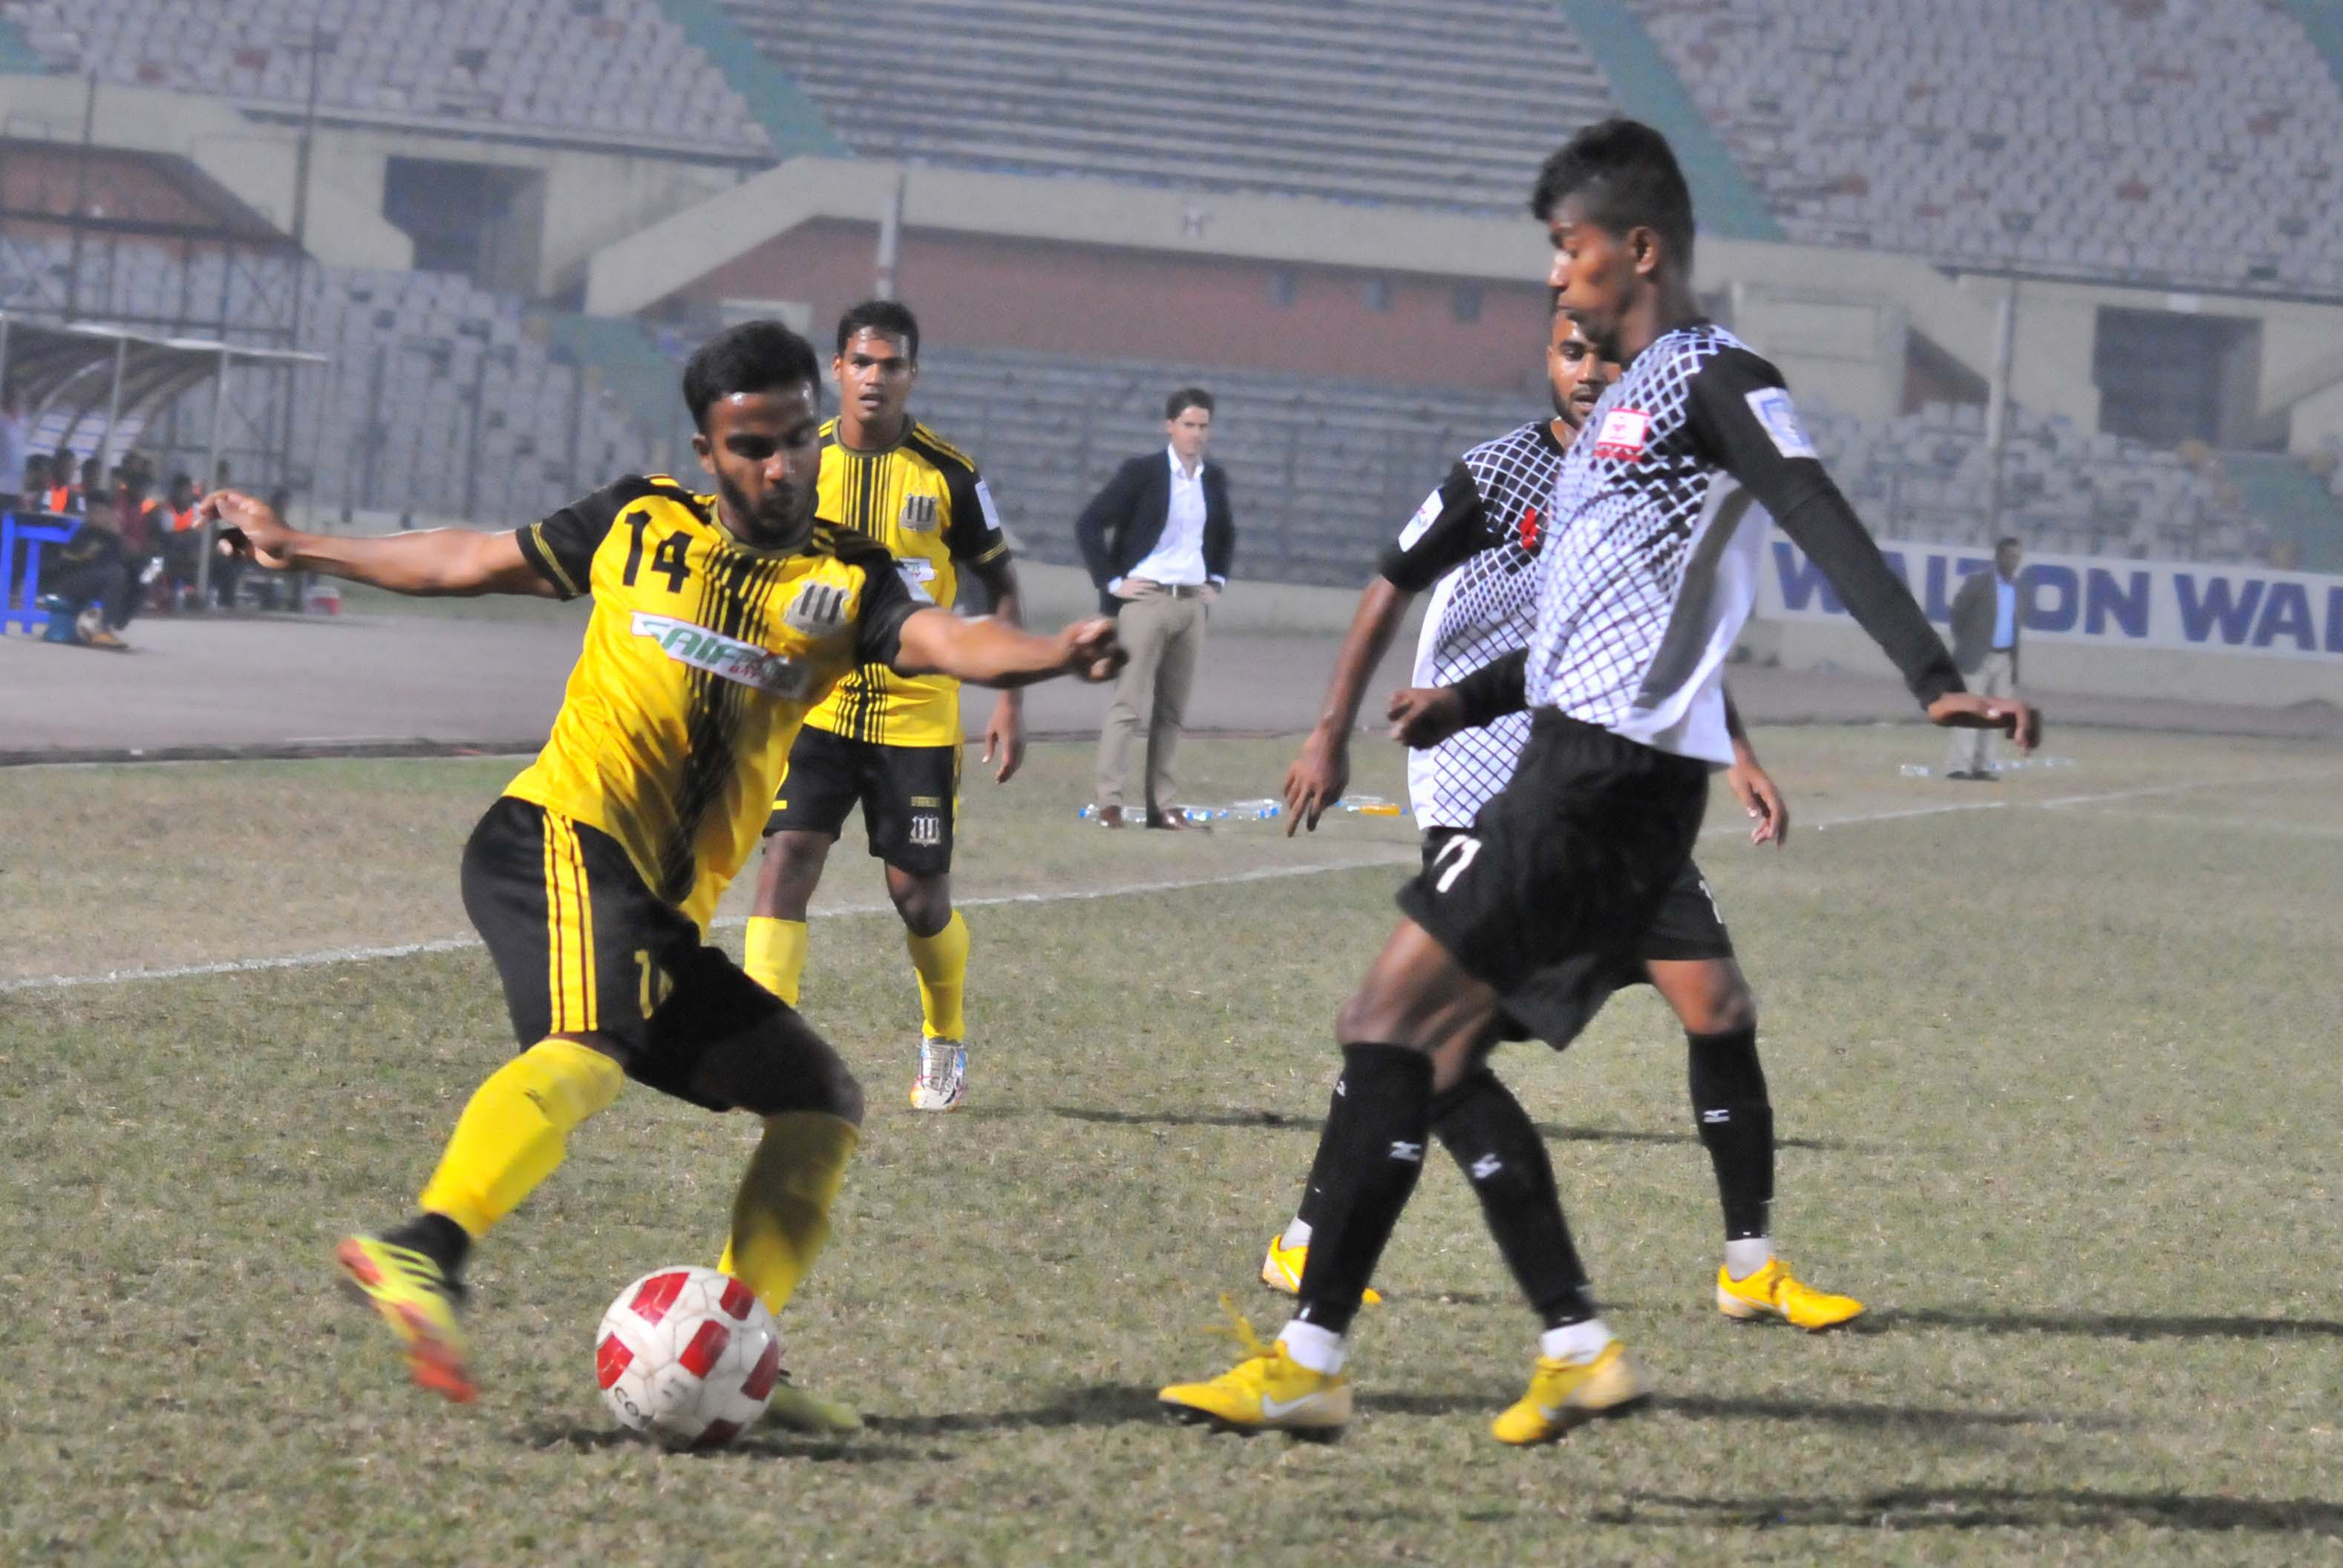 A moment of the football match of the Walton Independence Cup between Arambagh Krira Sangha and Saif Sporting Club at the Bangabandhu National Stadium on Friday. Arambagh won the match 3-1.